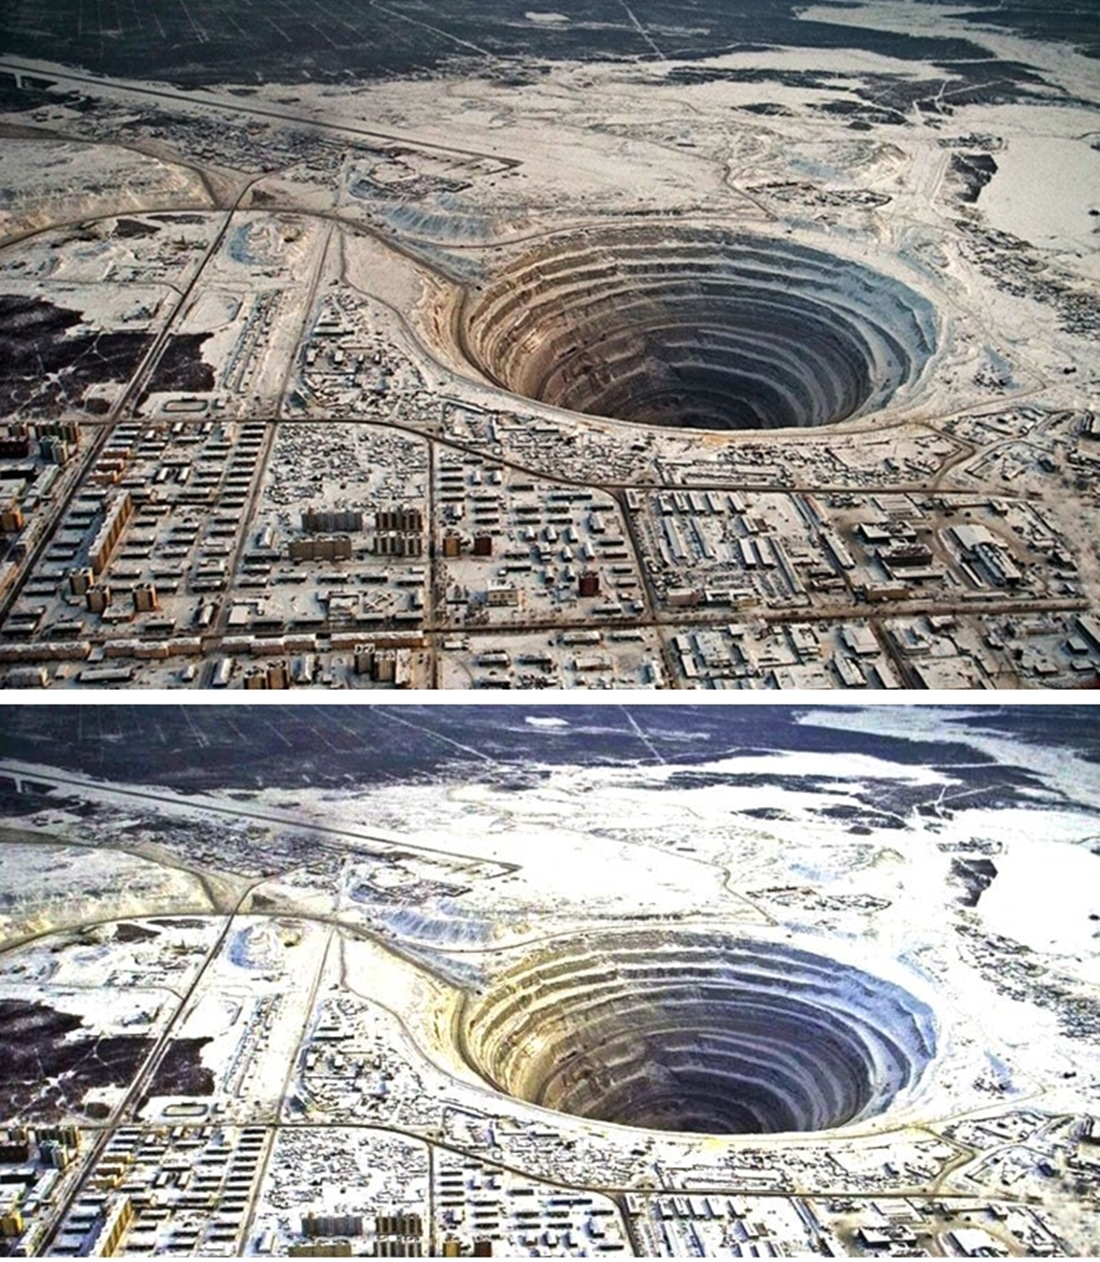 Diamantgruvan Mir, Mirny Diamond Mine